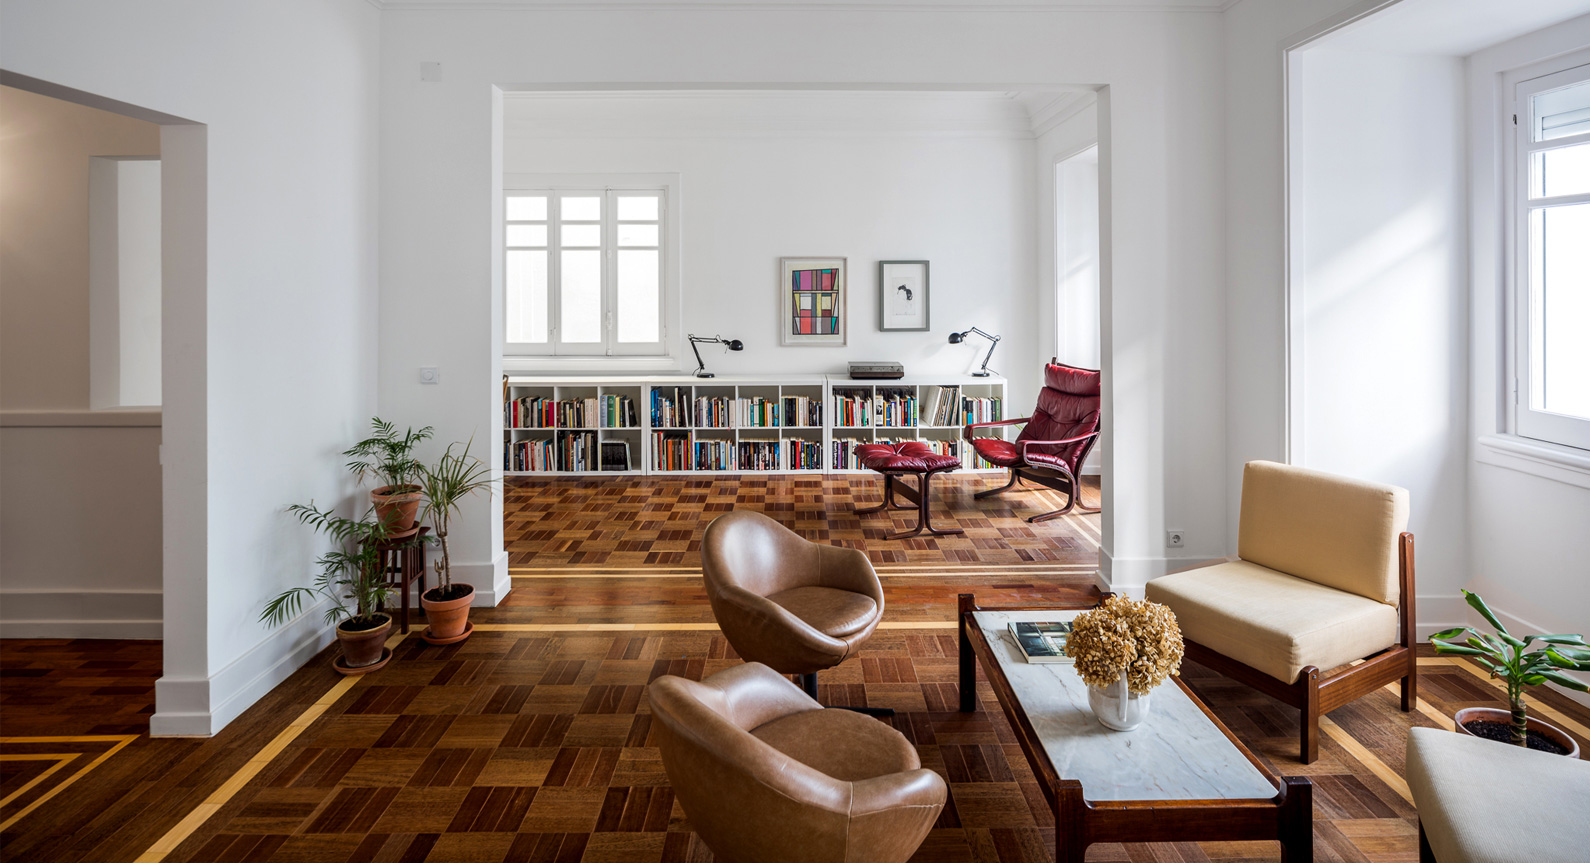 How The Discovery Of Existing Hardwood Parquet Flooring Transformed This Lisbon Apartment